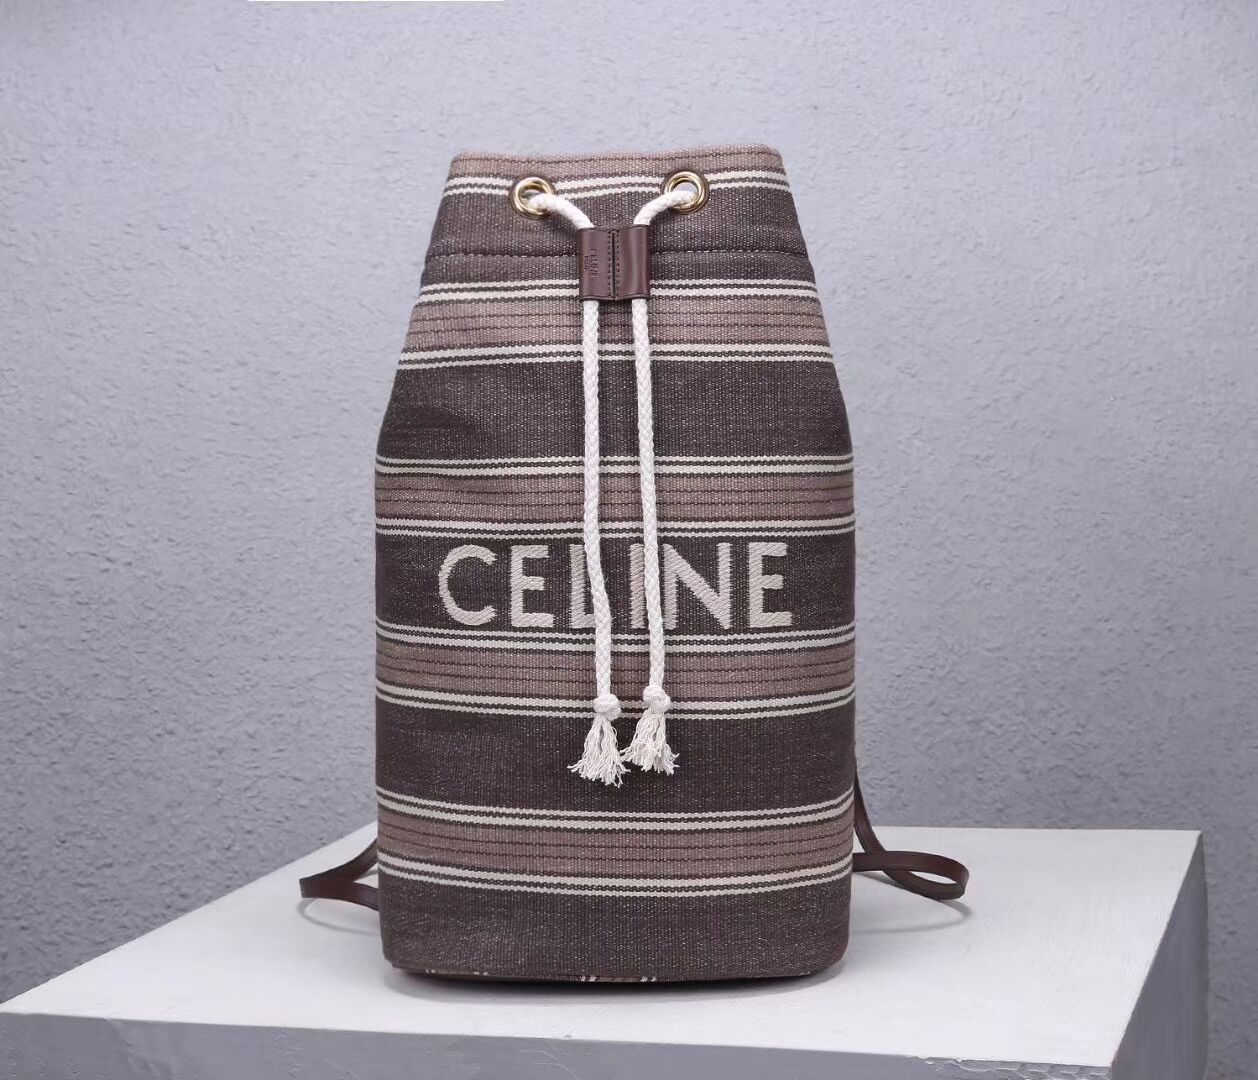 CELINE Canvas Shoulder Bag CL92173 Gray